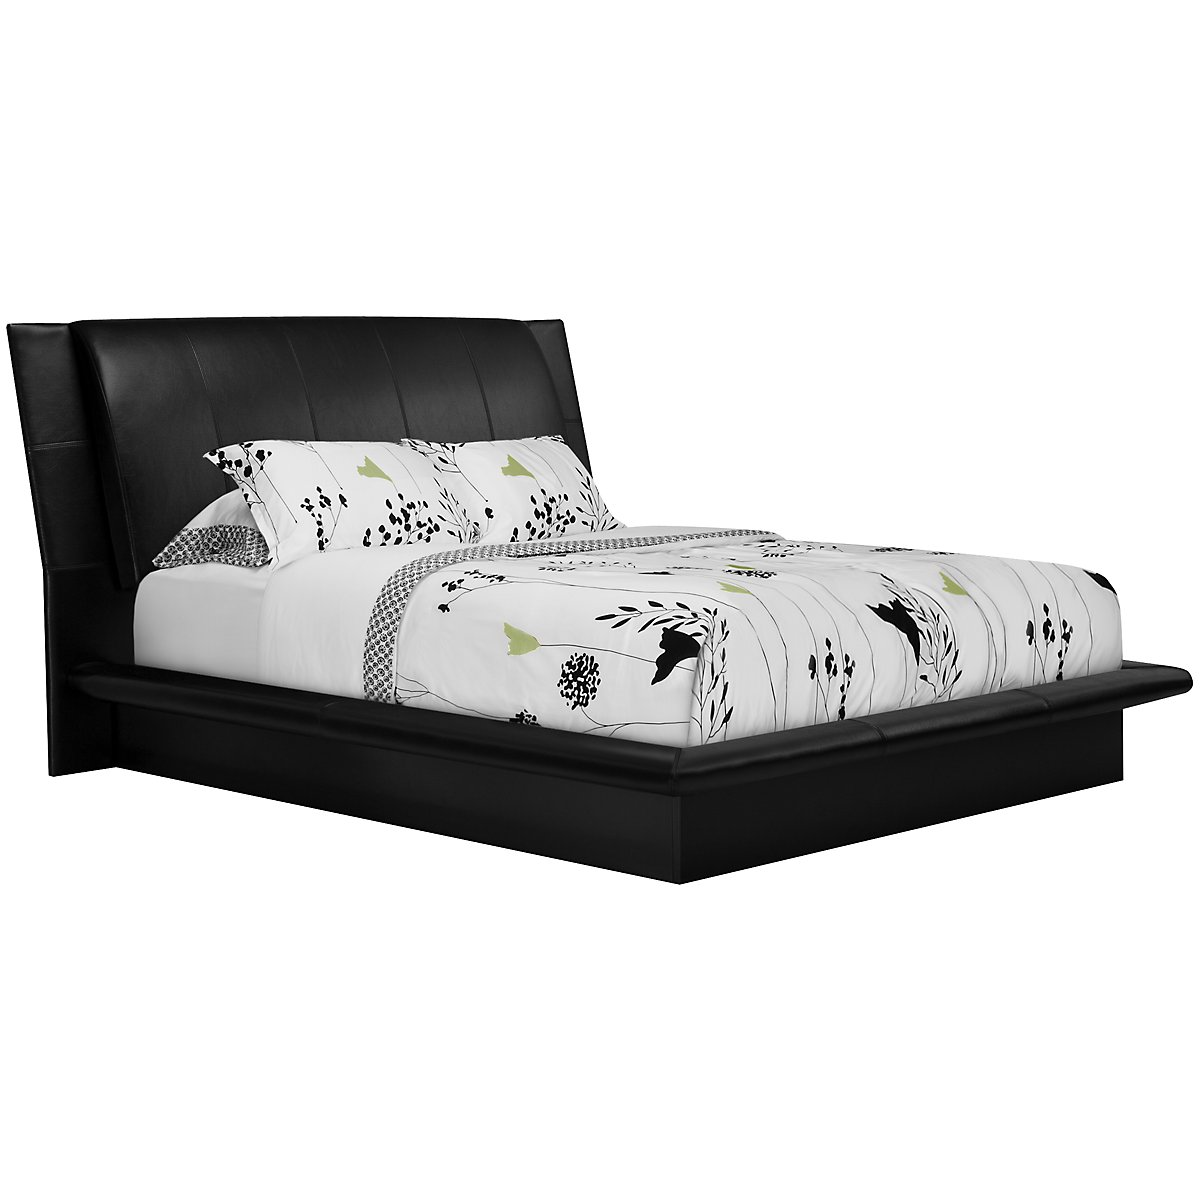 dimora black upholsterd platform bed - dimora black upholstered platform bed